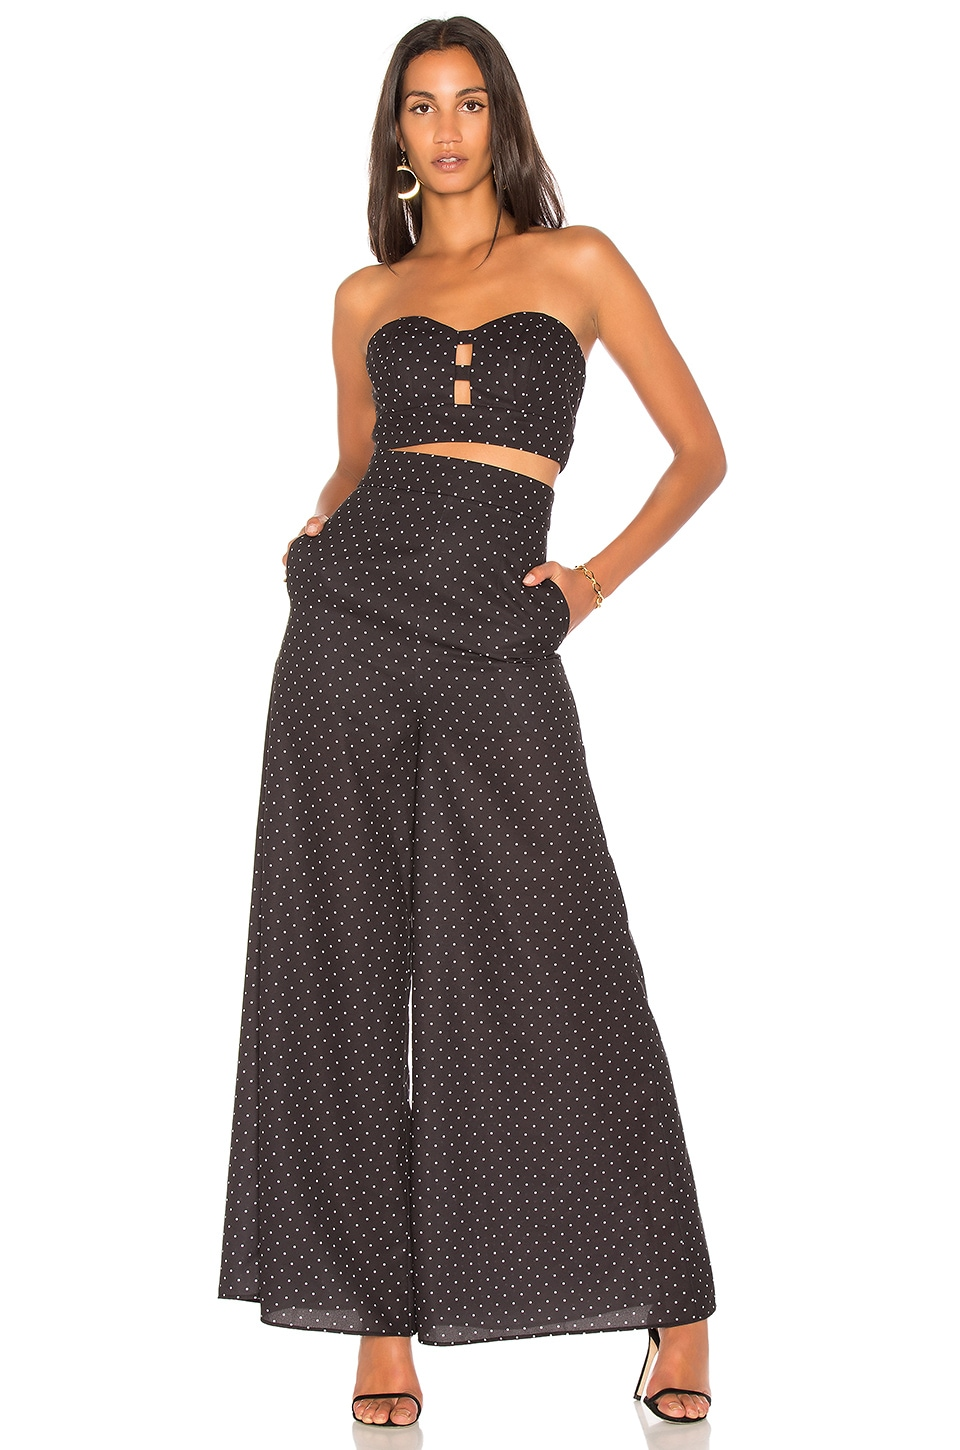 FAME AND PARTNERS x Revolve Strapless Jumpsuit in Micro Dot